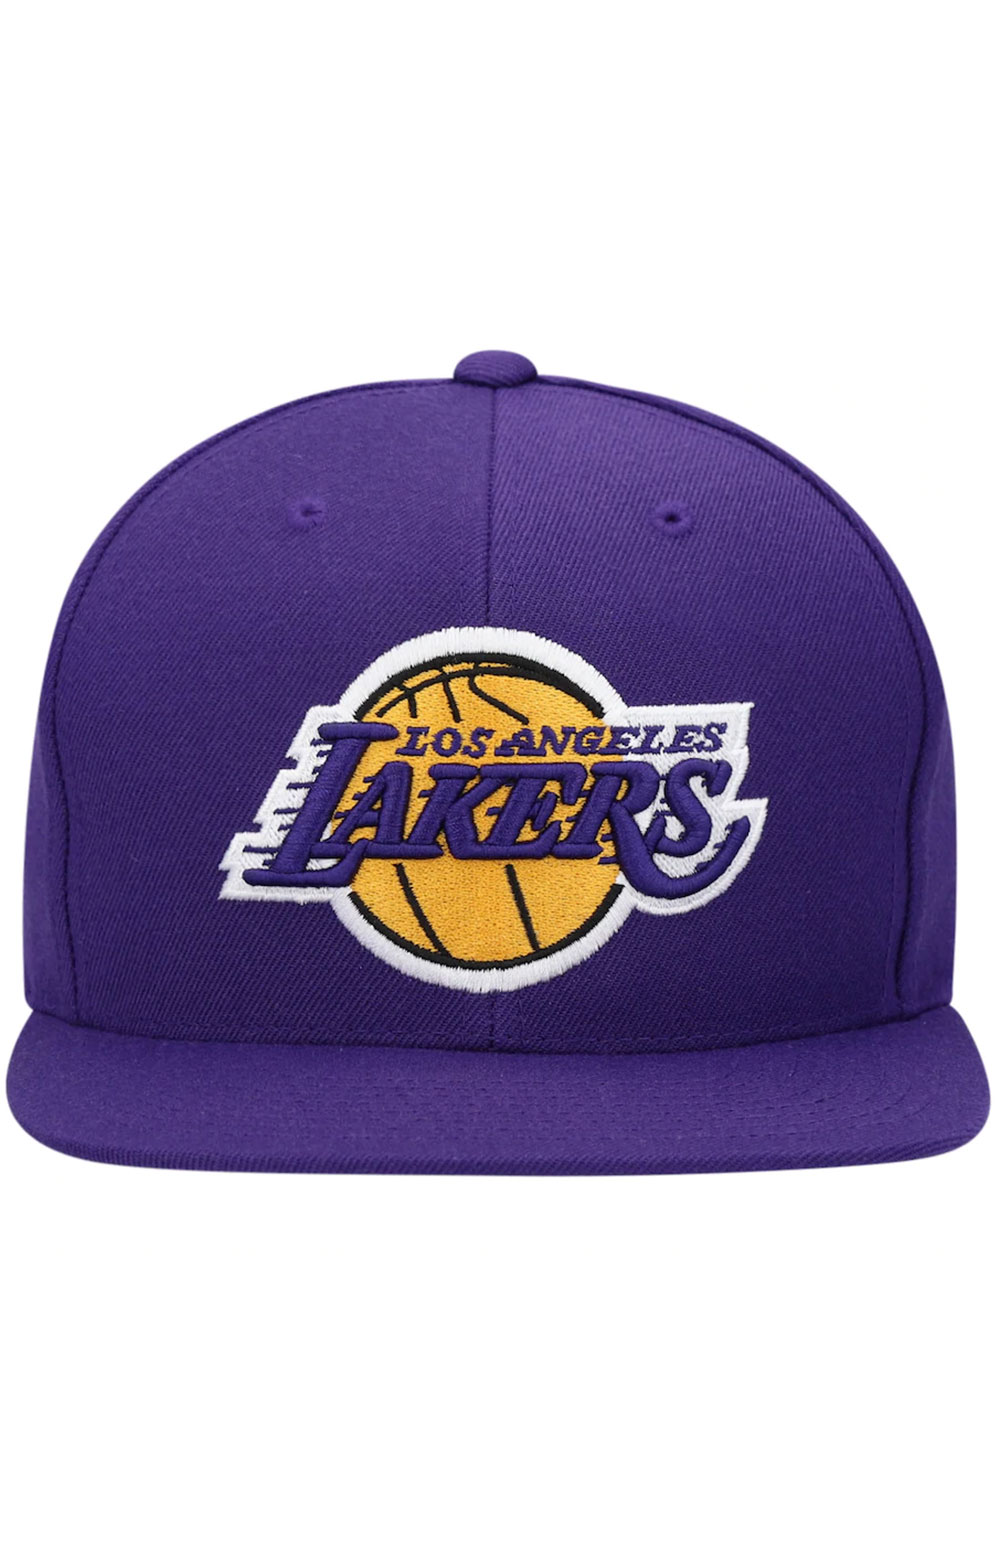 NBA Team Ground Snap-Back Hat - Lakers 2